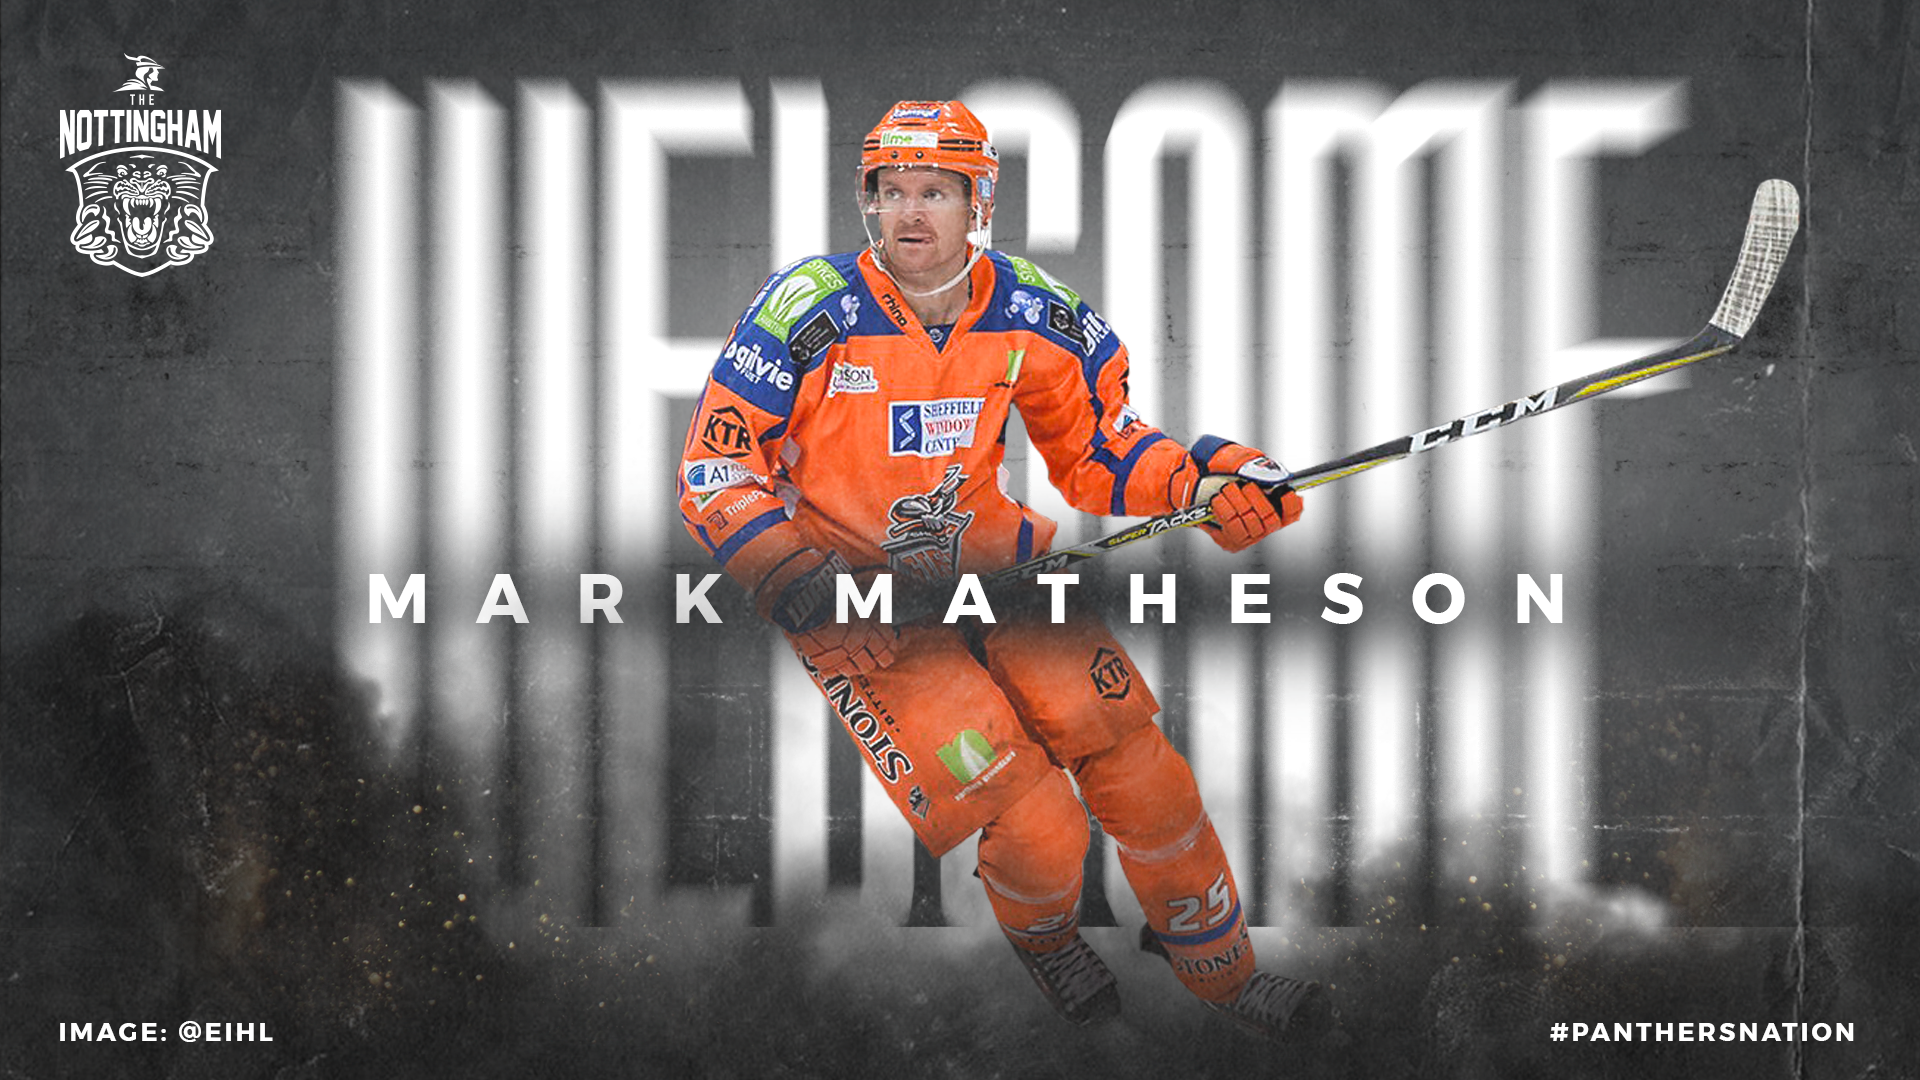 190614 | Matheson switches to Nottingham Top Image